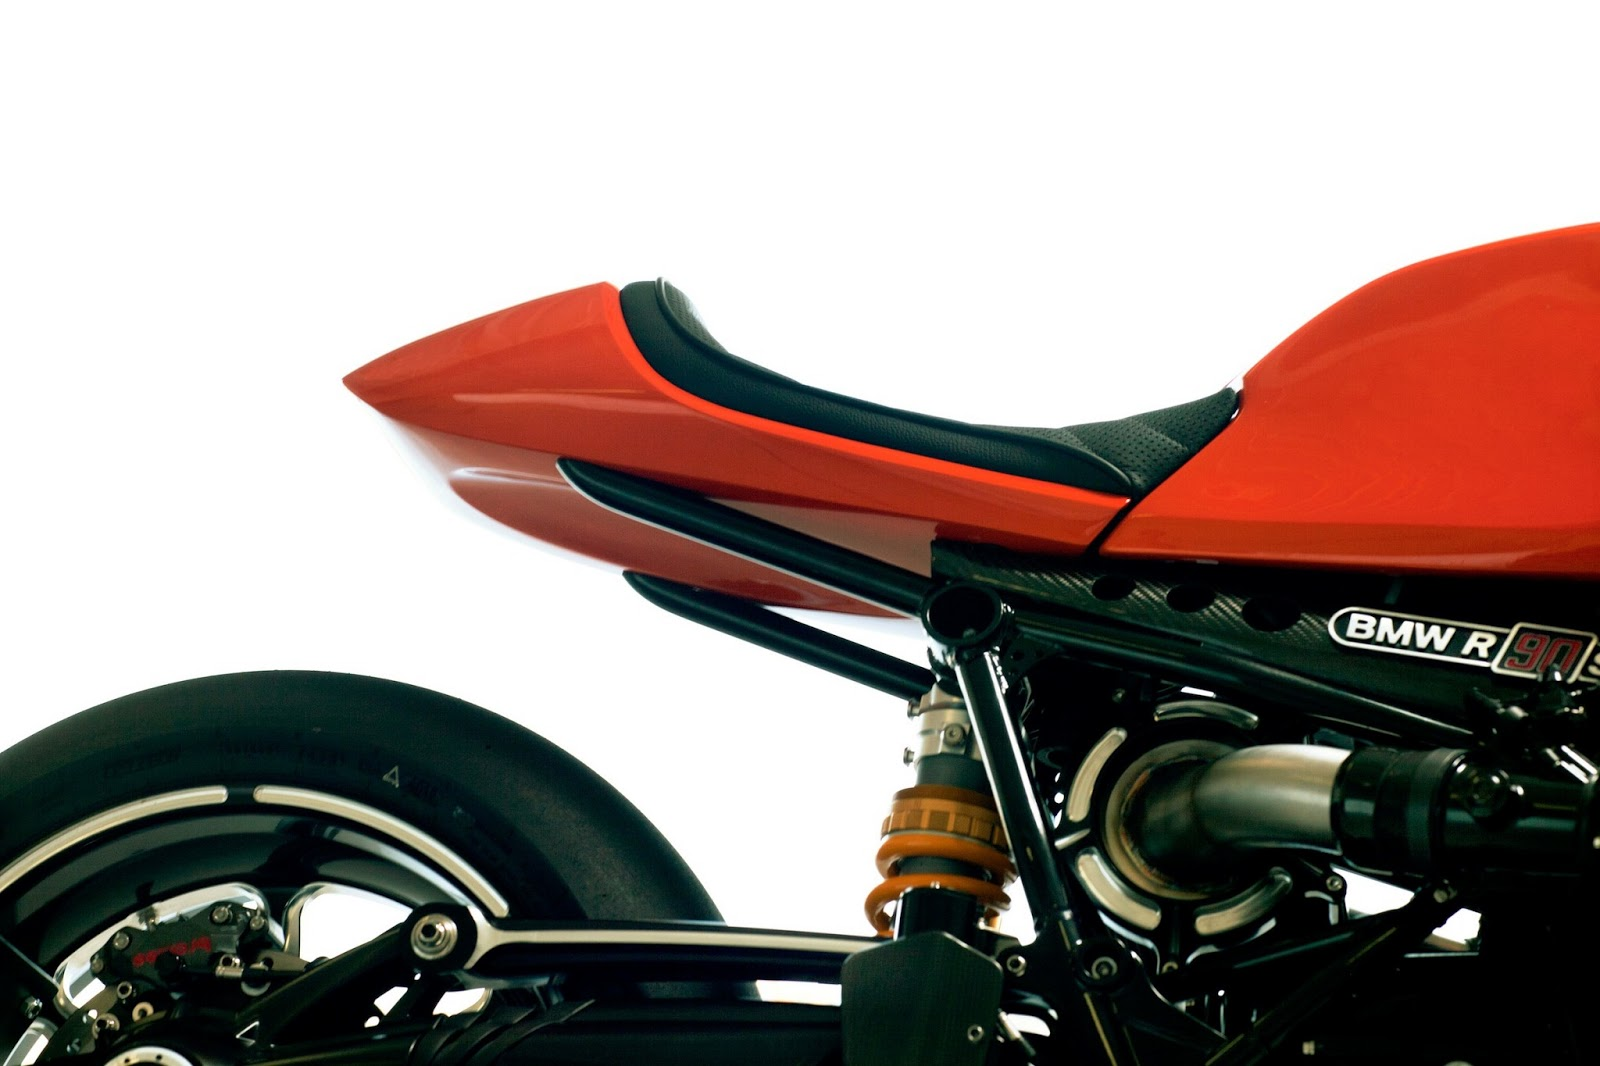 BMW CONCEPT NINETY MOTORCYCLE | BMW Concept 90 Motorcycle Images Below (BMW Concept Ninety Price TBA) Part celebration of BMW 90-year motorcycle legacy, Homage to the classic BMW R 90 S, the BMW Concept 90 Motorcycle